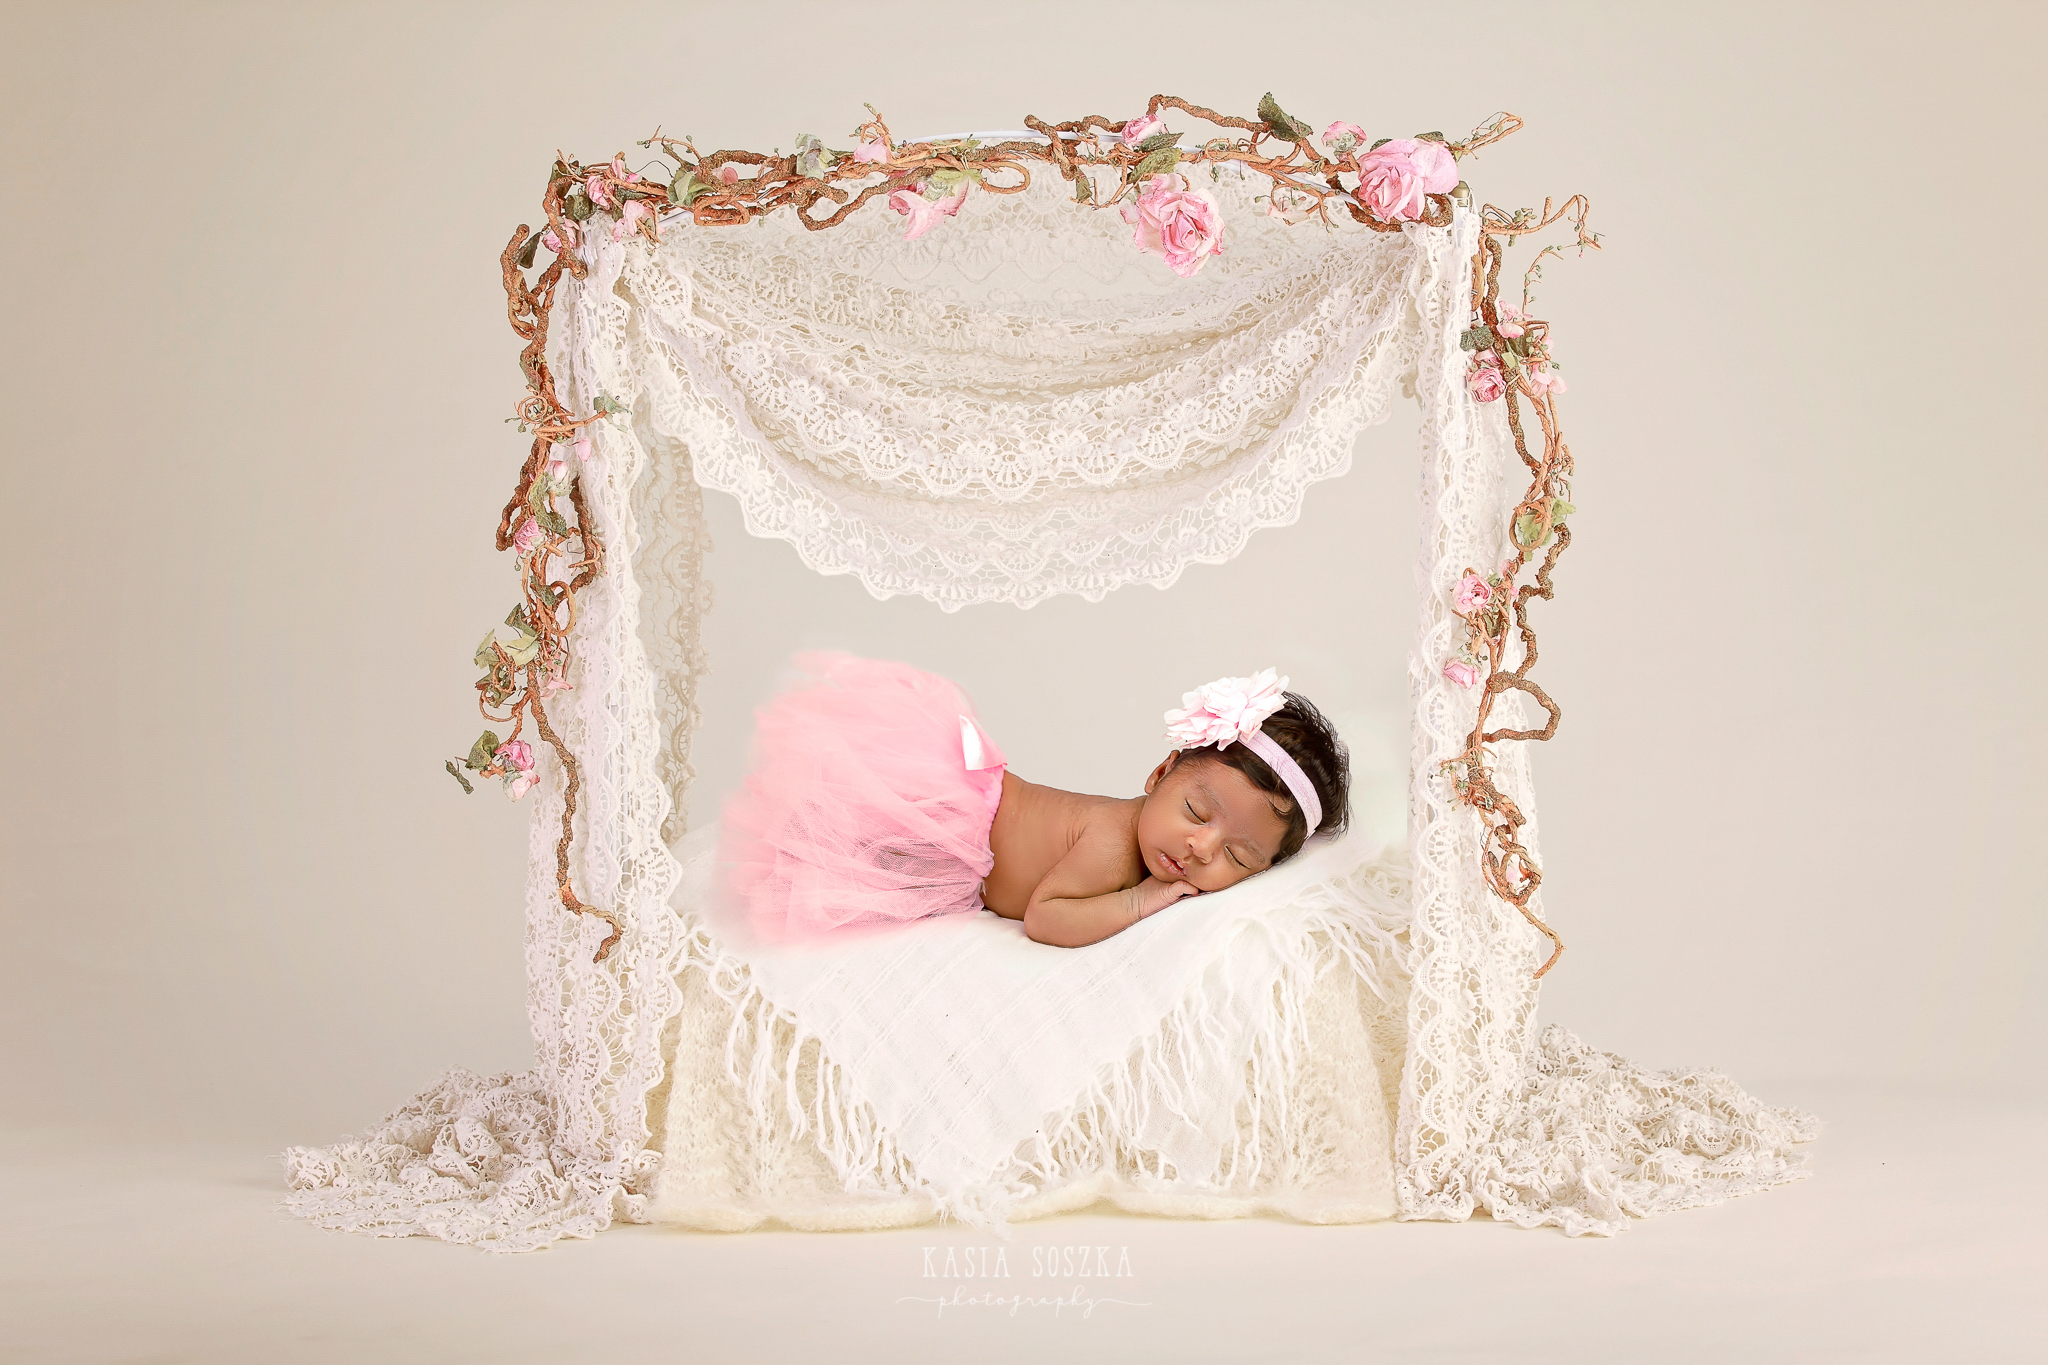 Newborn photography Leeds, Yorkshire, newborn session Leeds, York, Harrogate, Bradford: newborn baby girl in a pink tutu skirt sleeping in a cute poster bed